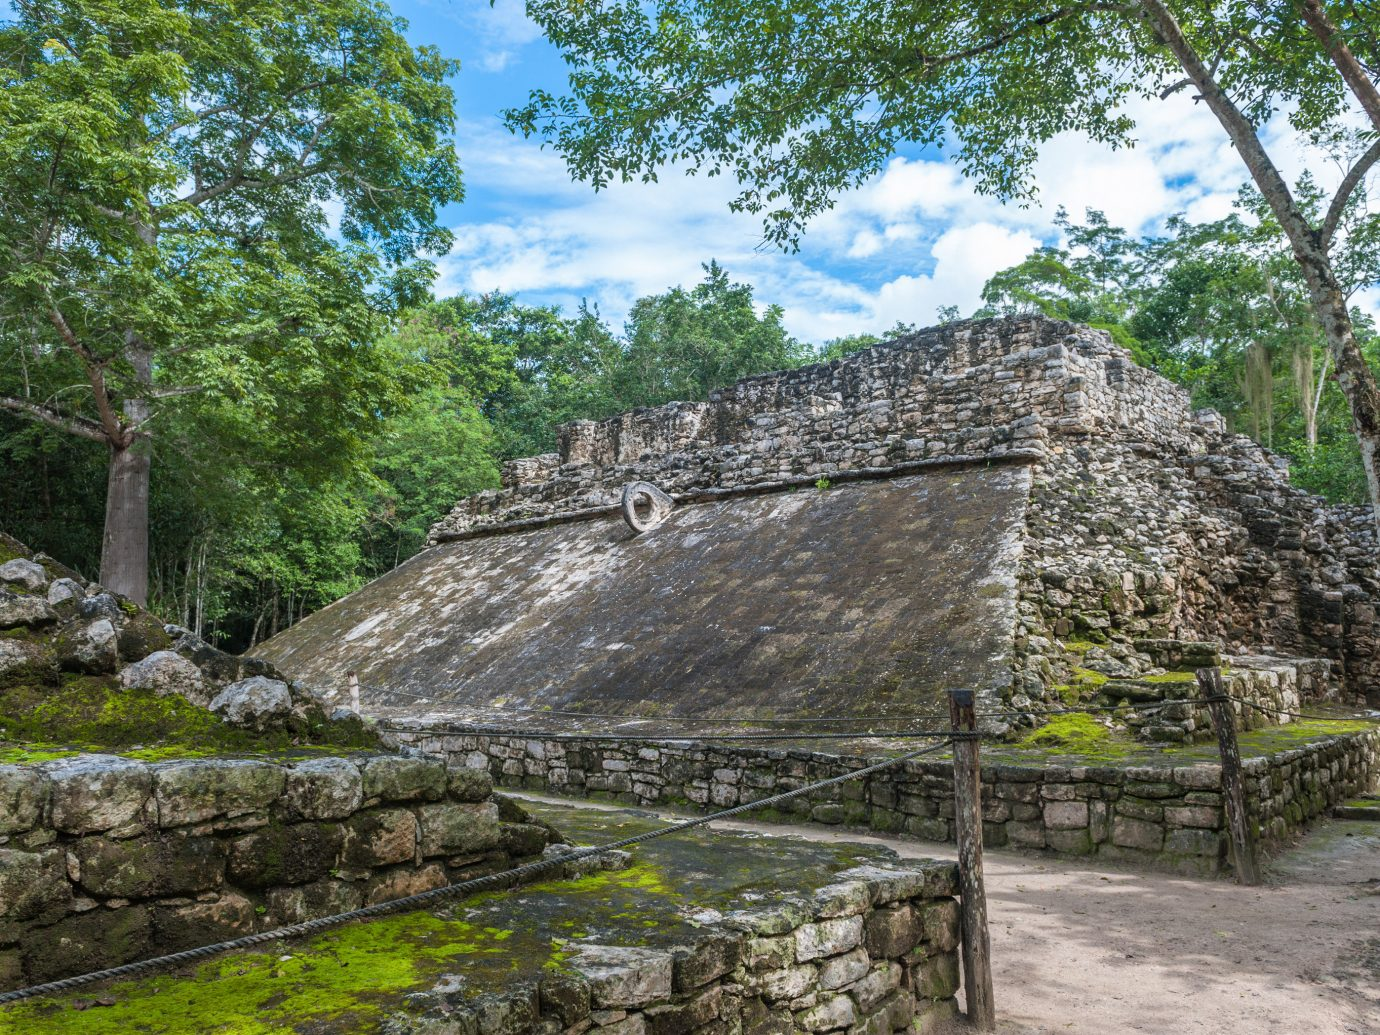 City Mexico Trip Ideas Tulum tree outdoor rock archaeological site stone Ruins ancient history outcrop maya civilization stone wall landscape plant maya city Jungle old area surrounded